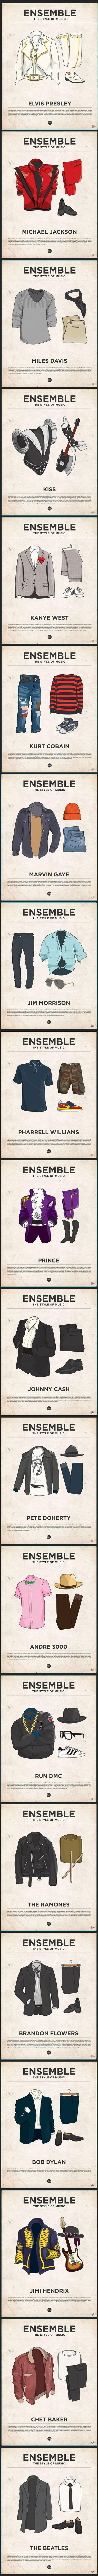 The Style of Music. Probably repost.. Was expecting beiber with a buttplug.